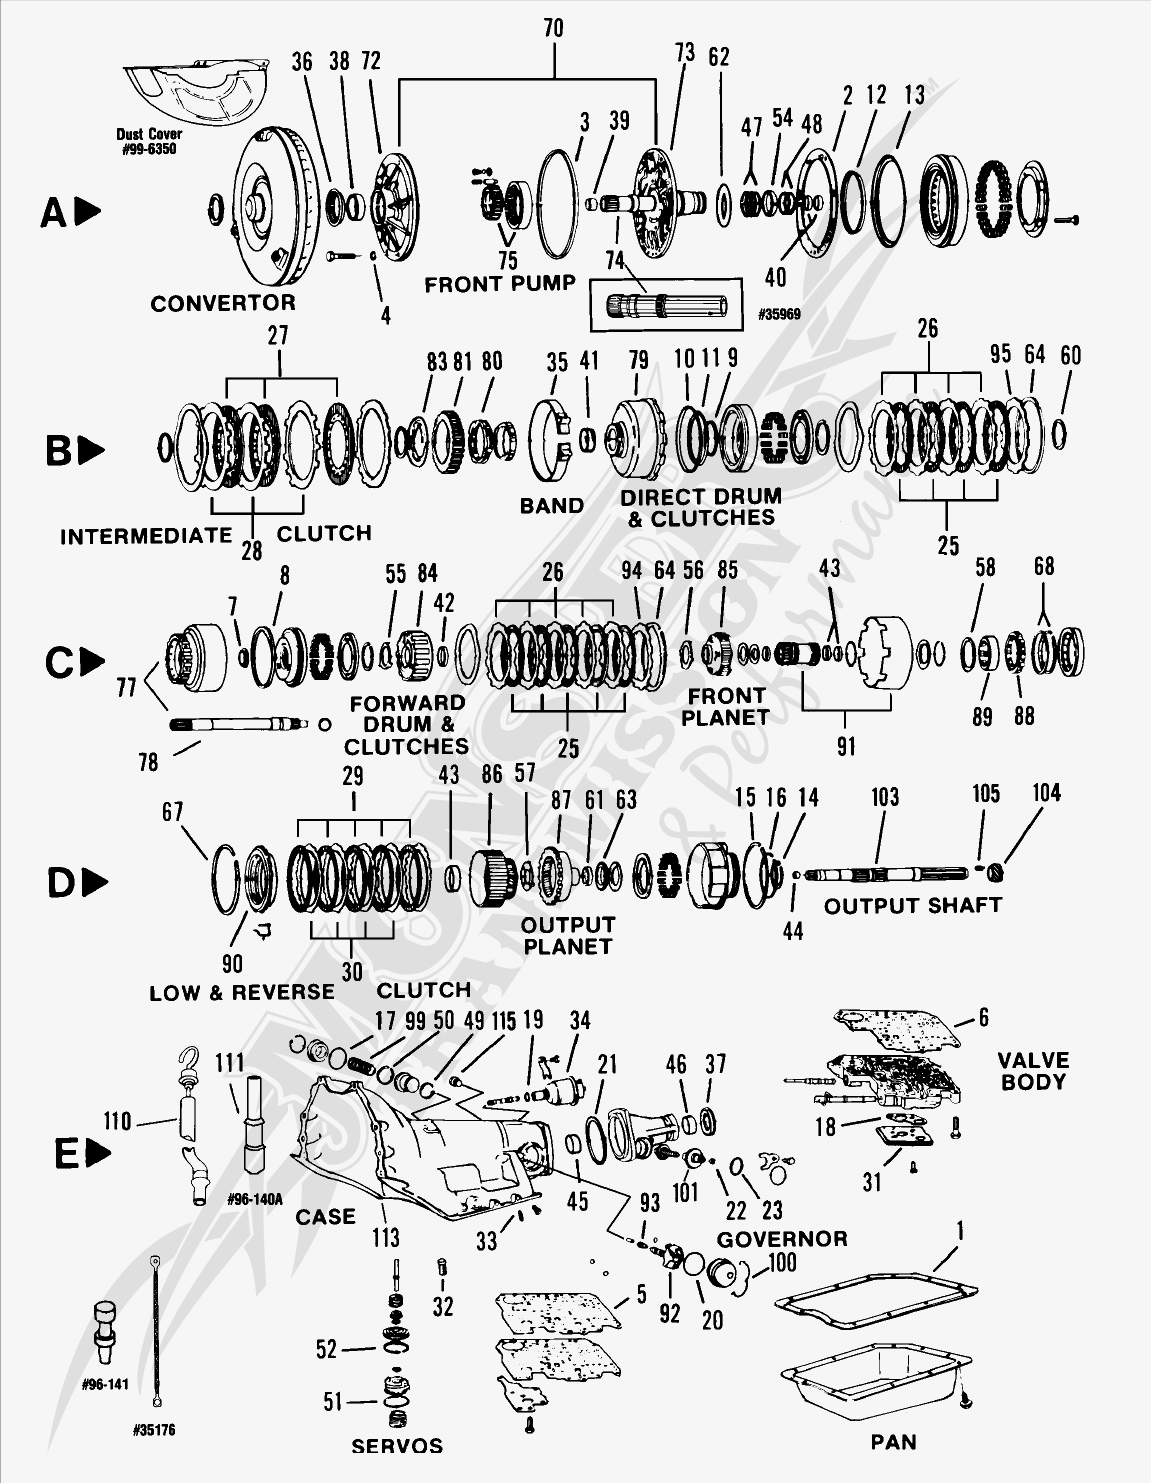 gm sm420 parts diagram wiring diagram Dual Battery Wiring Diagram for Dually gm transmission parts diagram 8 6 malawi24 de u2022turbo 350c th350c automatic transmission parts and